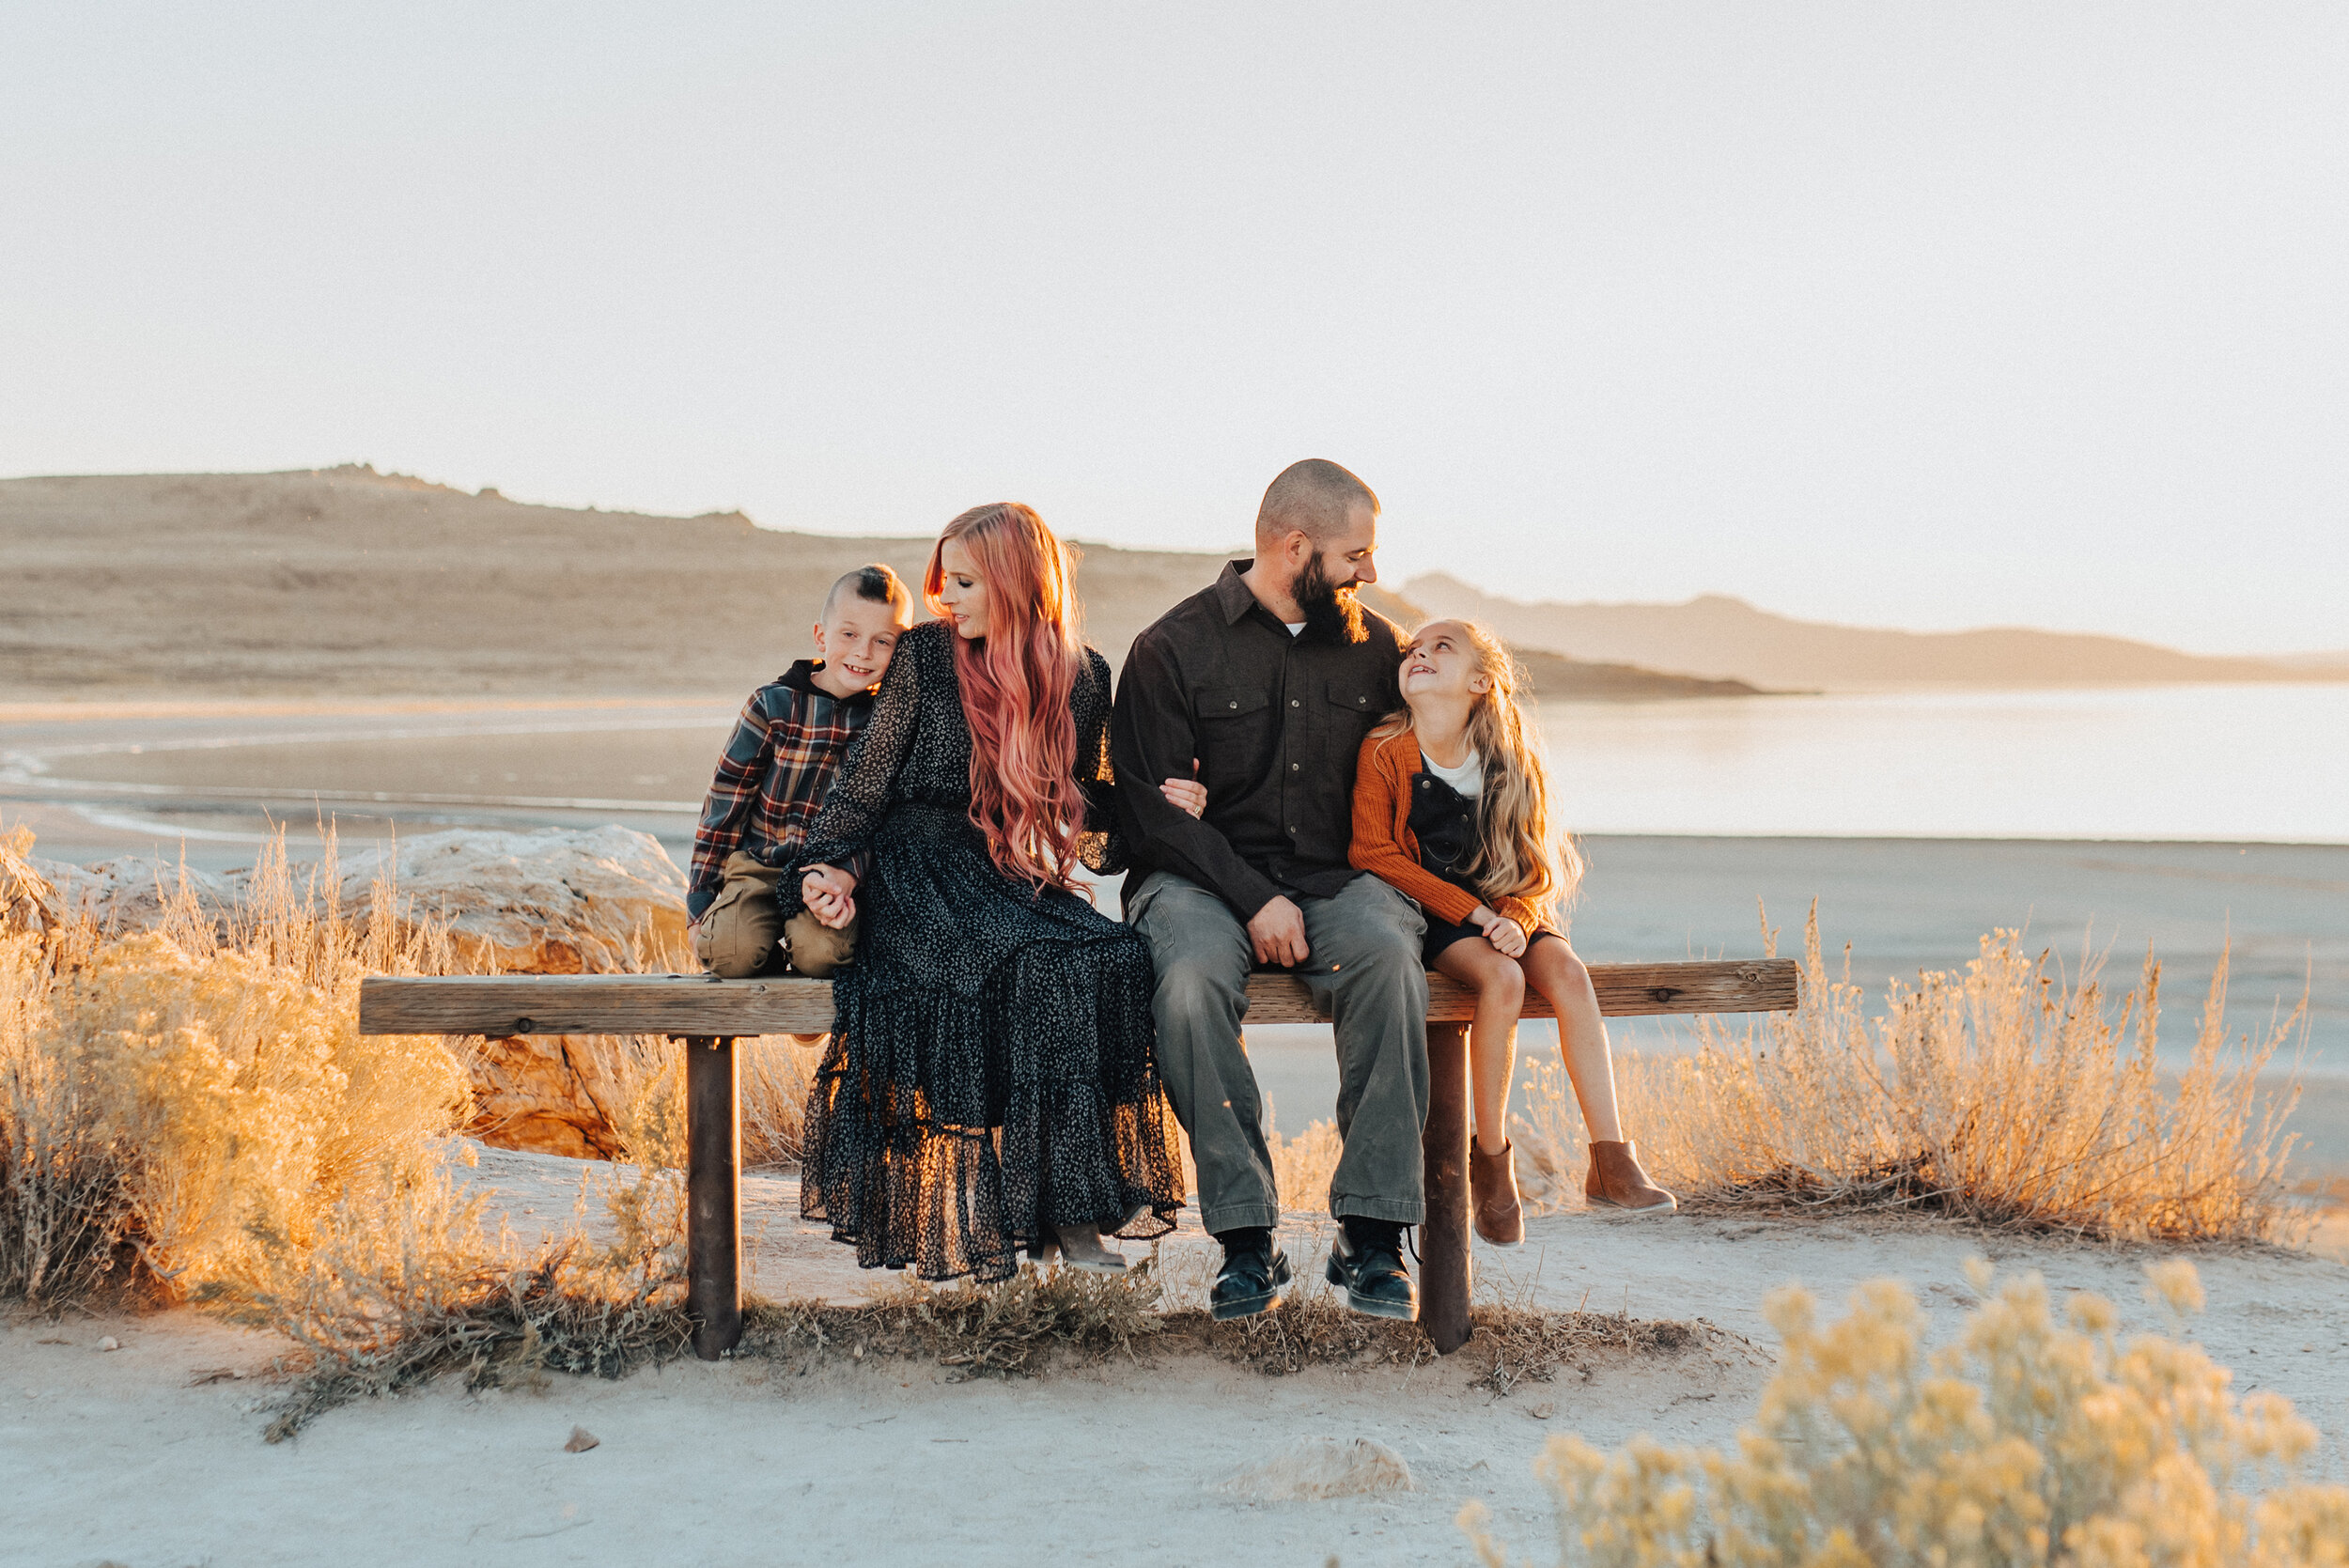 A glowing family sitting together in a beautiful sun set photo shoot by Kristi Alyse Photography. Utah photographer goals ideas and inspiration Antelope Island photo shoot goals young family photo shoot inspiration sitting family pose inspiration love this family moment fall goals professional photographer goals #familypictures #utahphotographer #antelopeisland #outfitinspo #familypics #familyphotographer #pinkhair #saltlakecityphotog #slcfamilypictures